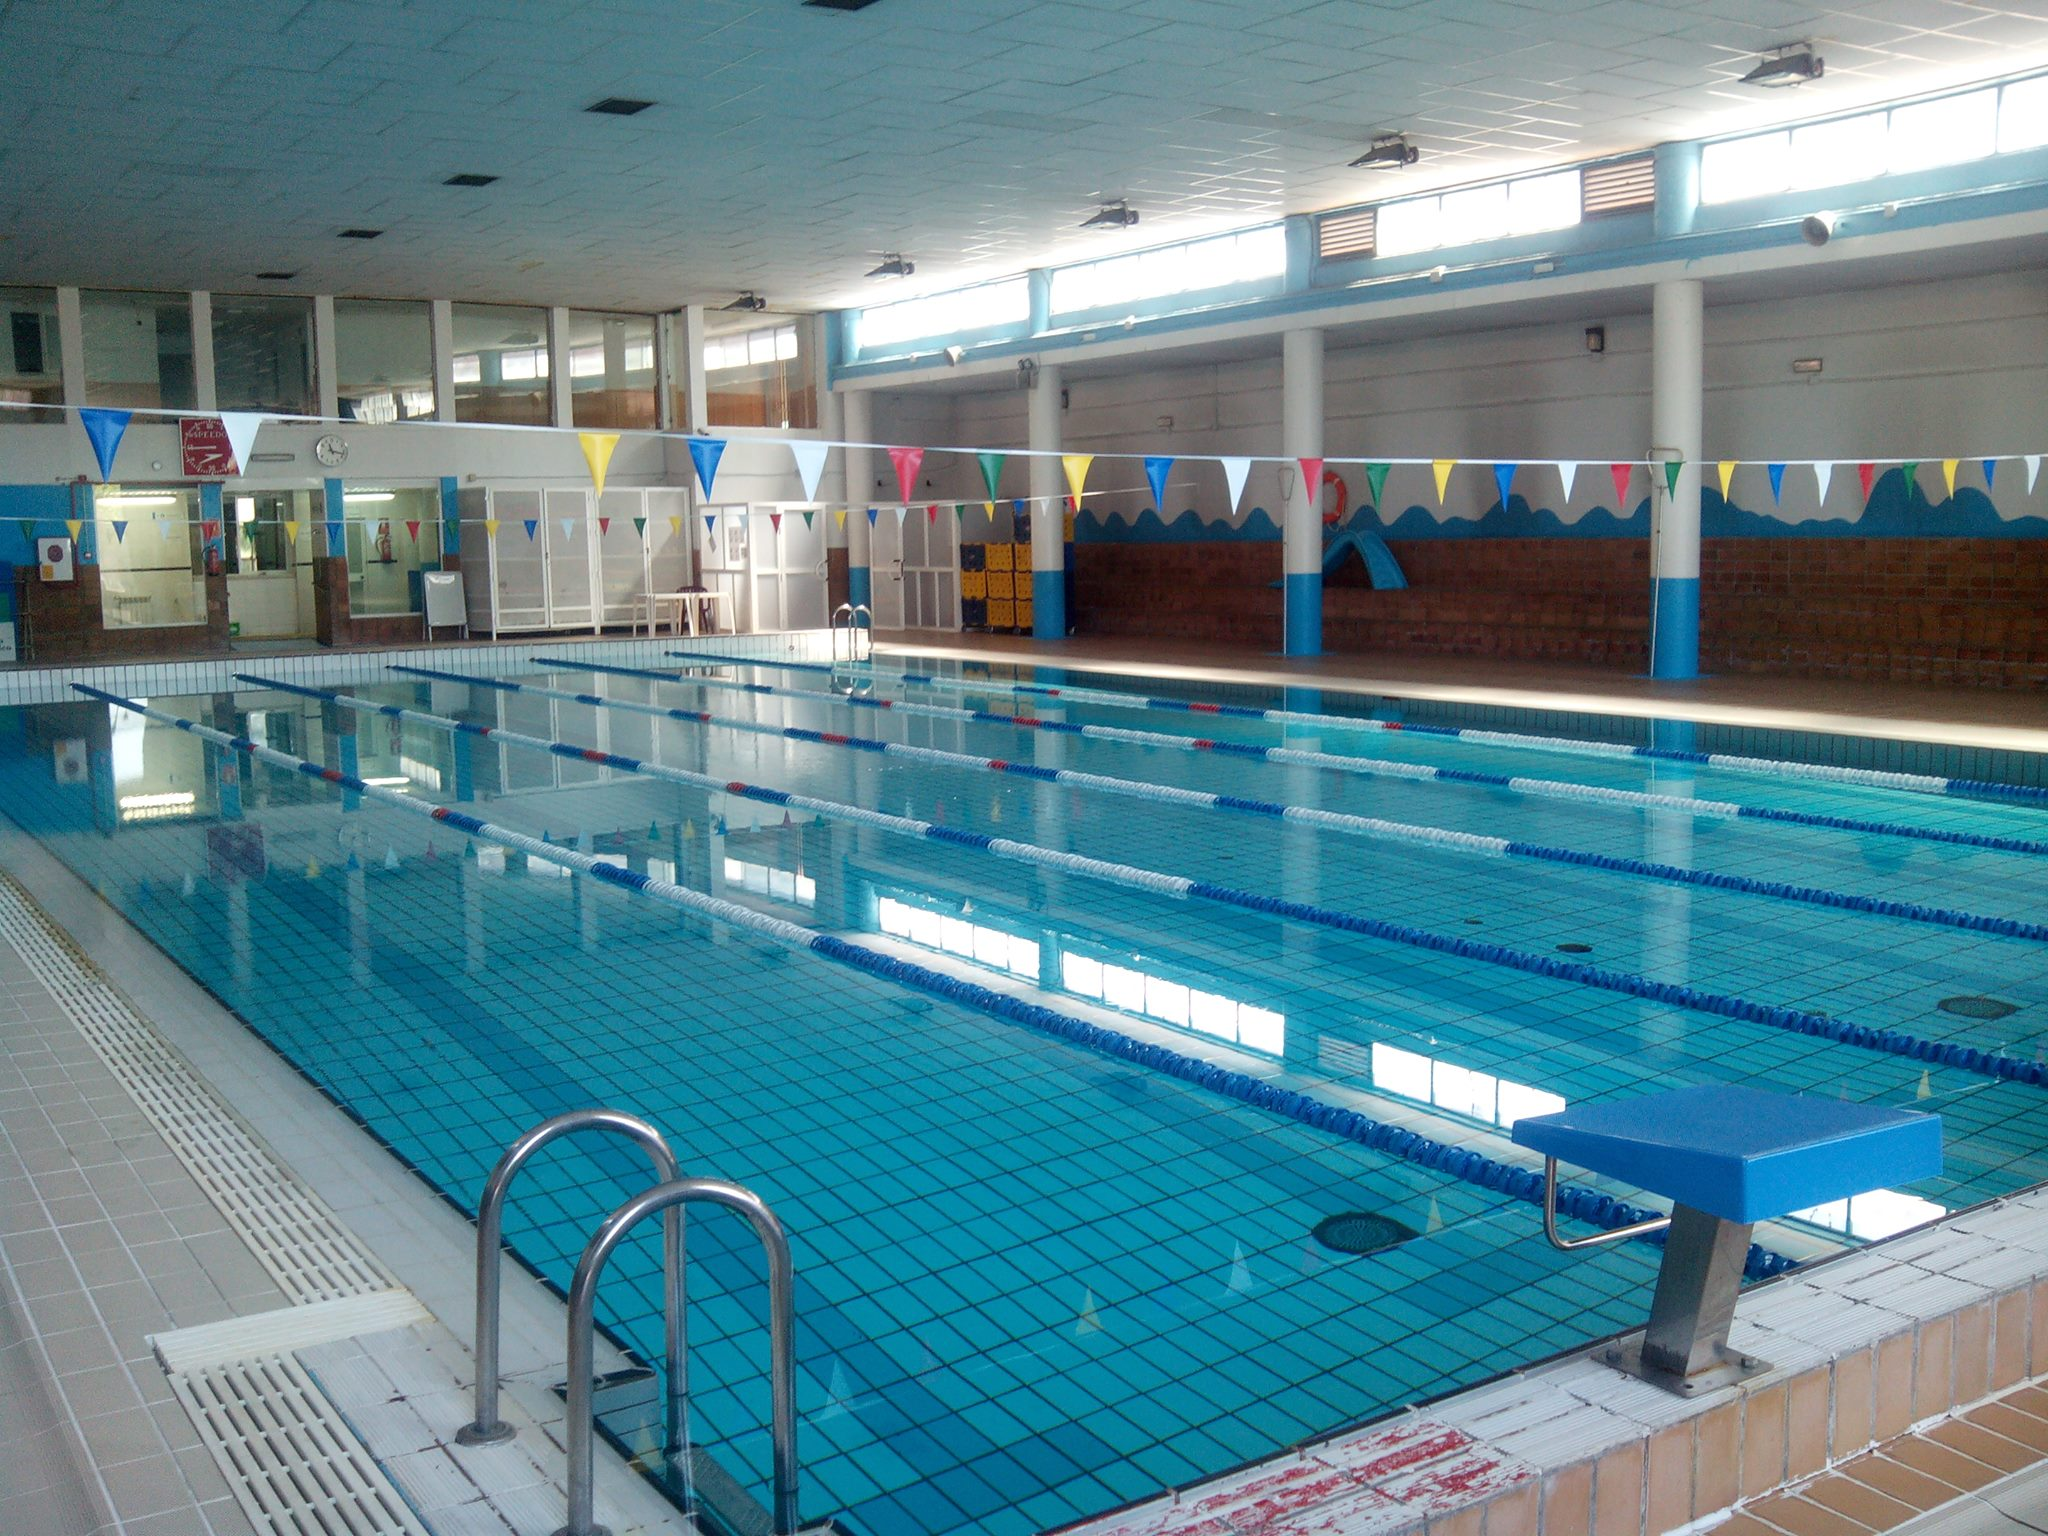 Eneres noticias for Piscina polideportivo